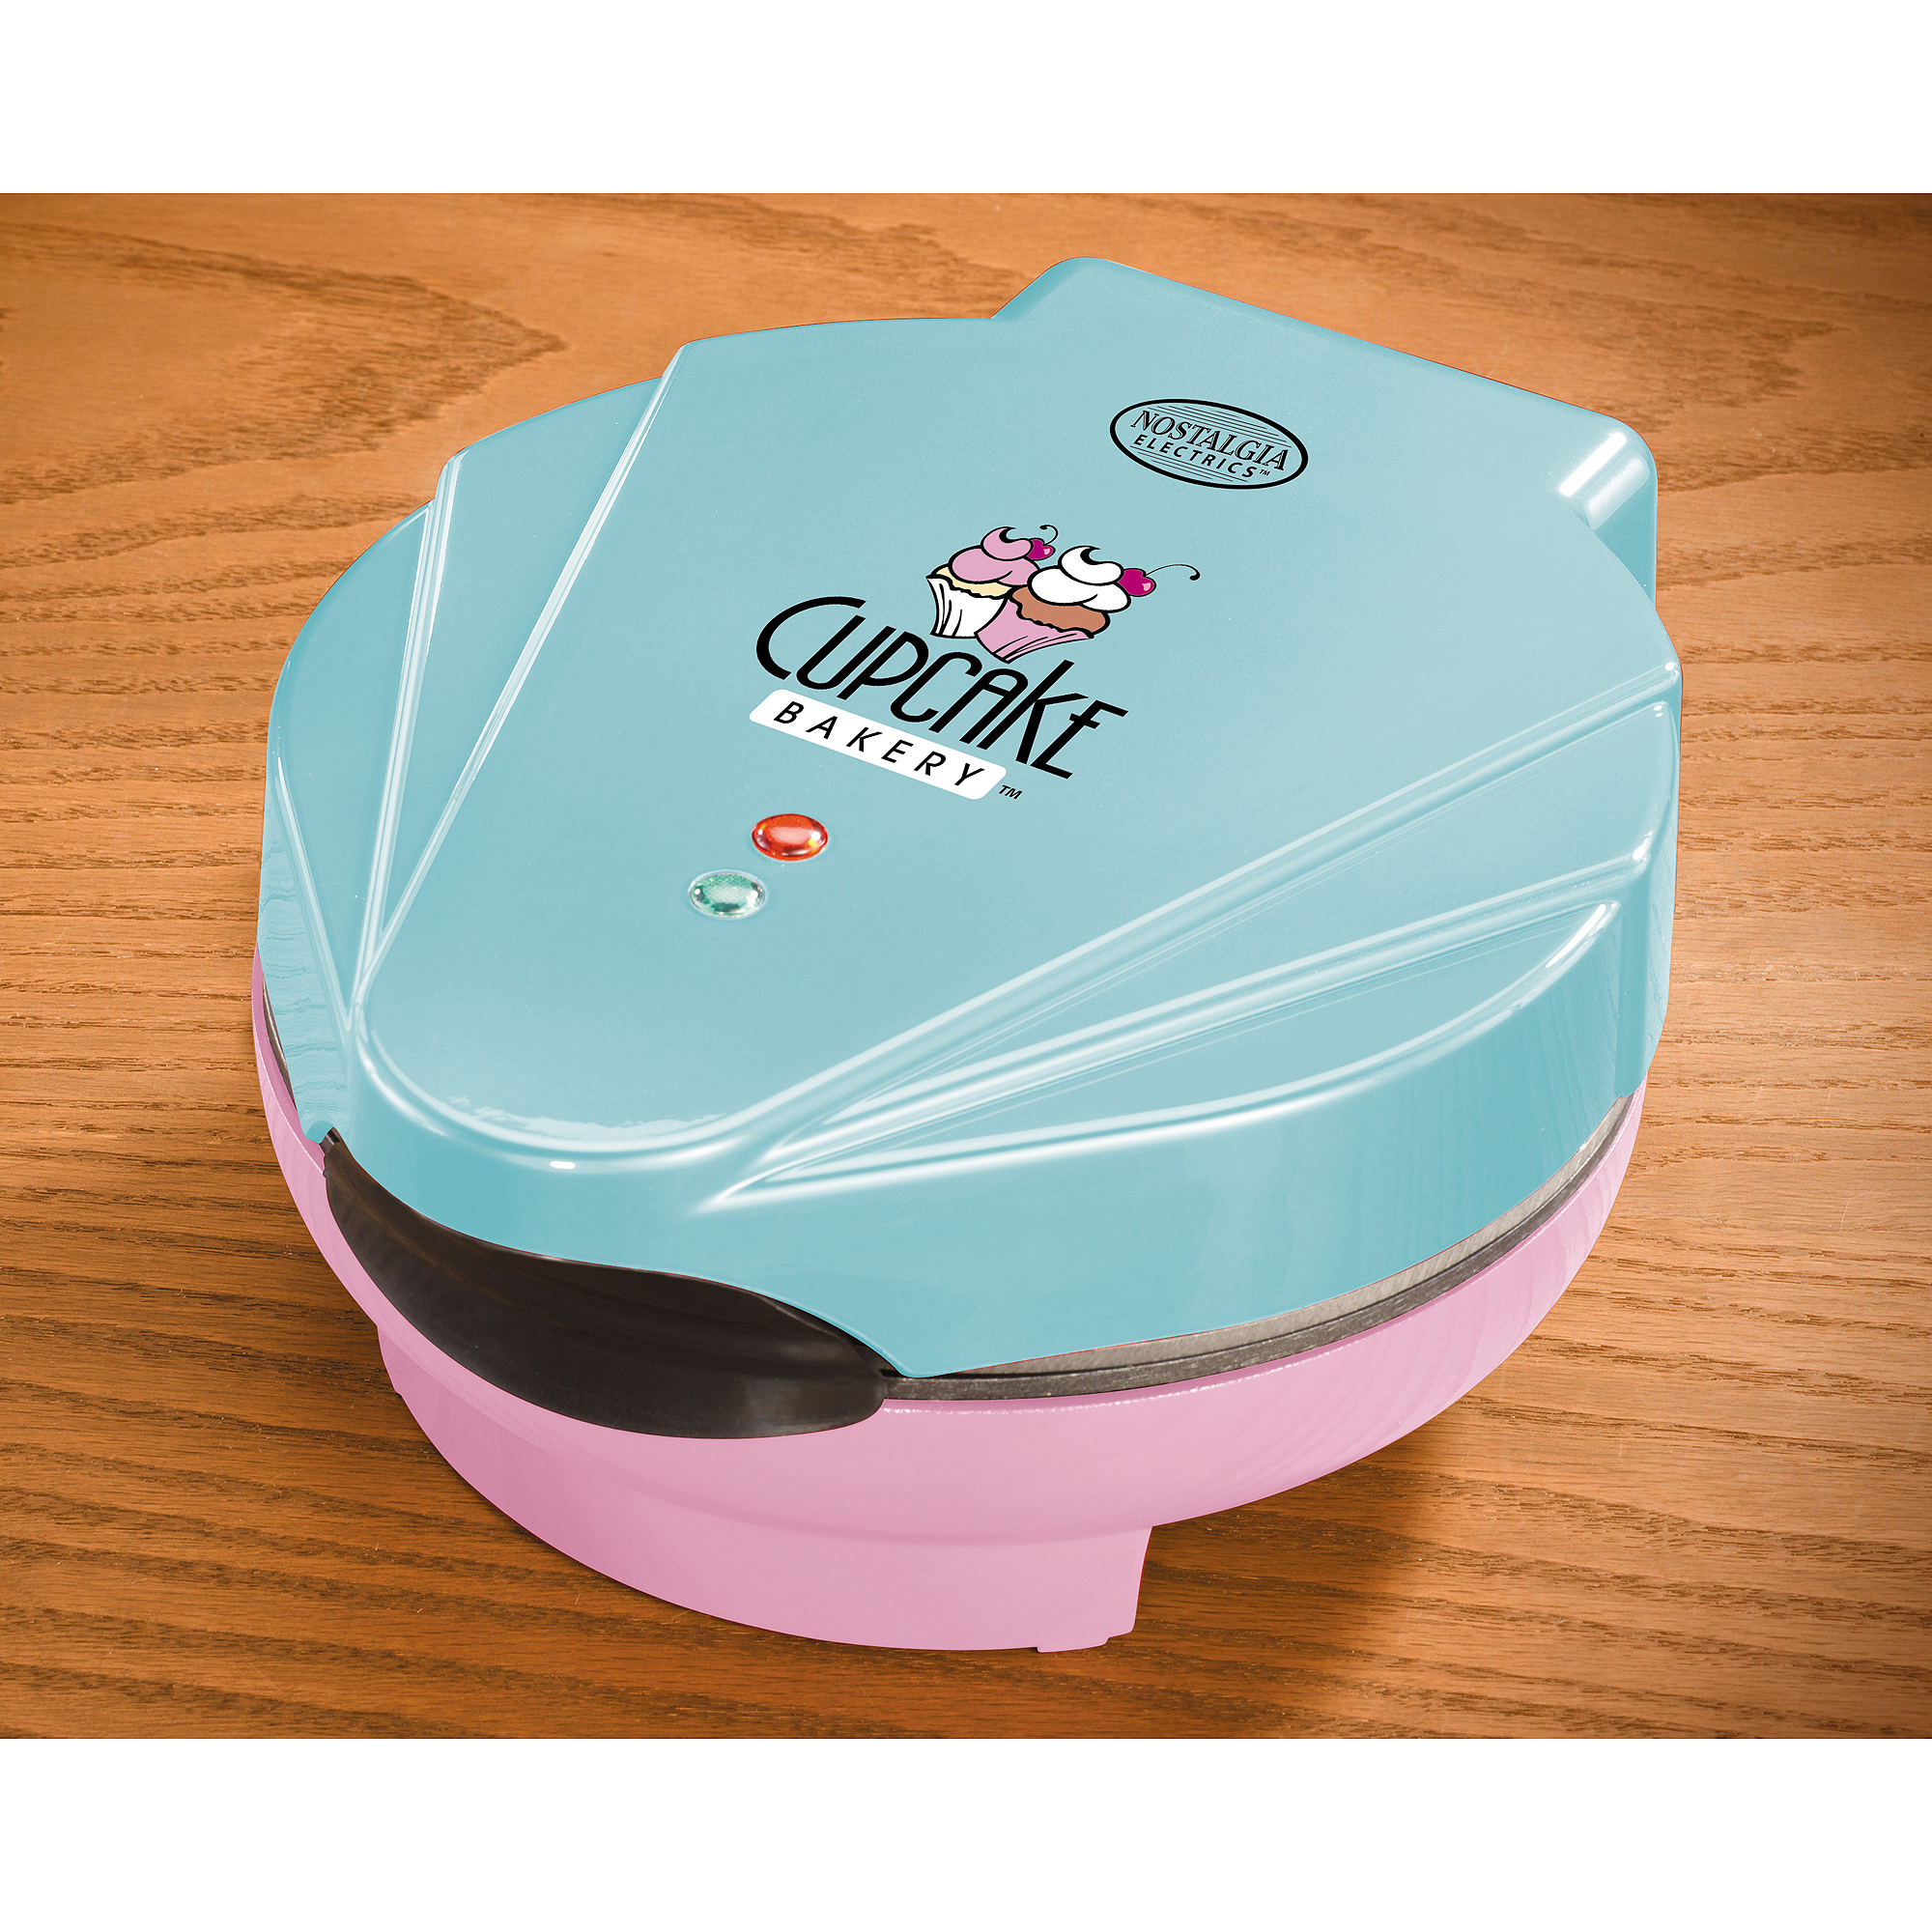 Nostalgia Electrics Mini Cupcake Maker, CKM100